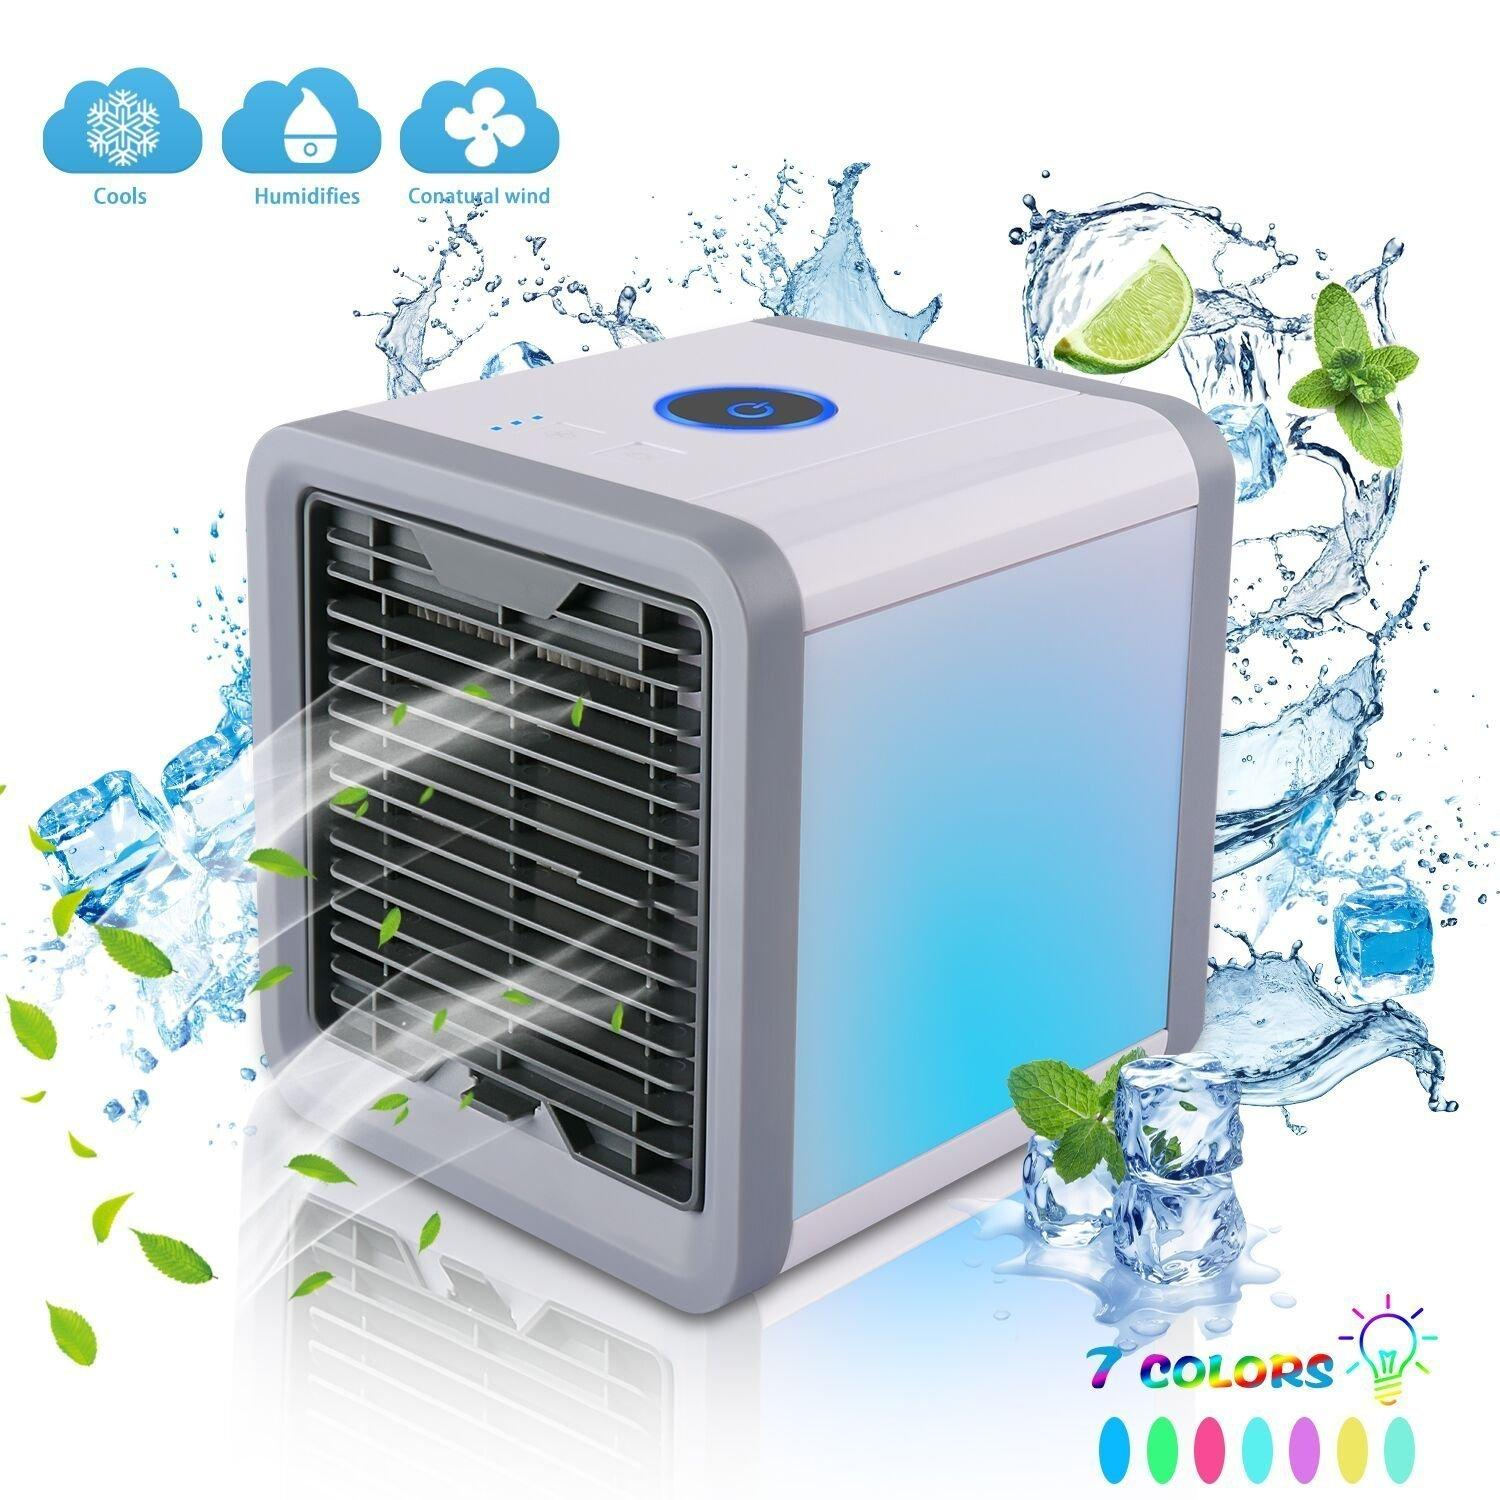 Mini USB Portable Air Cooler Fan Air Conditioner 7 Colors Light Desktop Air Cool